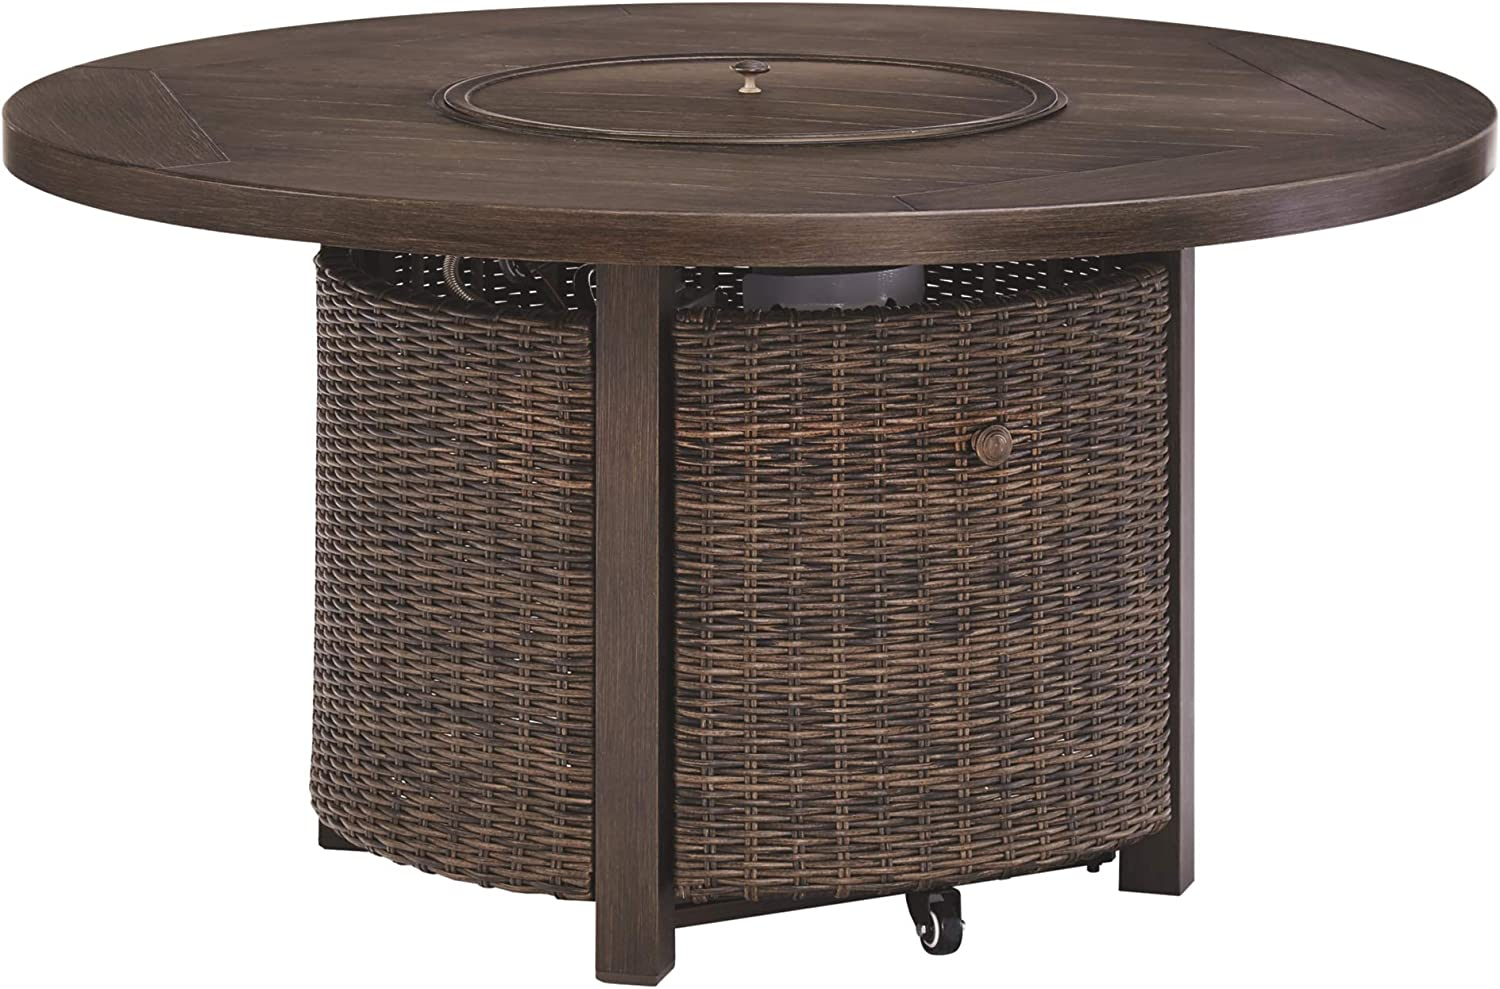 Signature Design by Ashley P750-776 Paradise Trail Round Fire Pit Table, Medium Brown